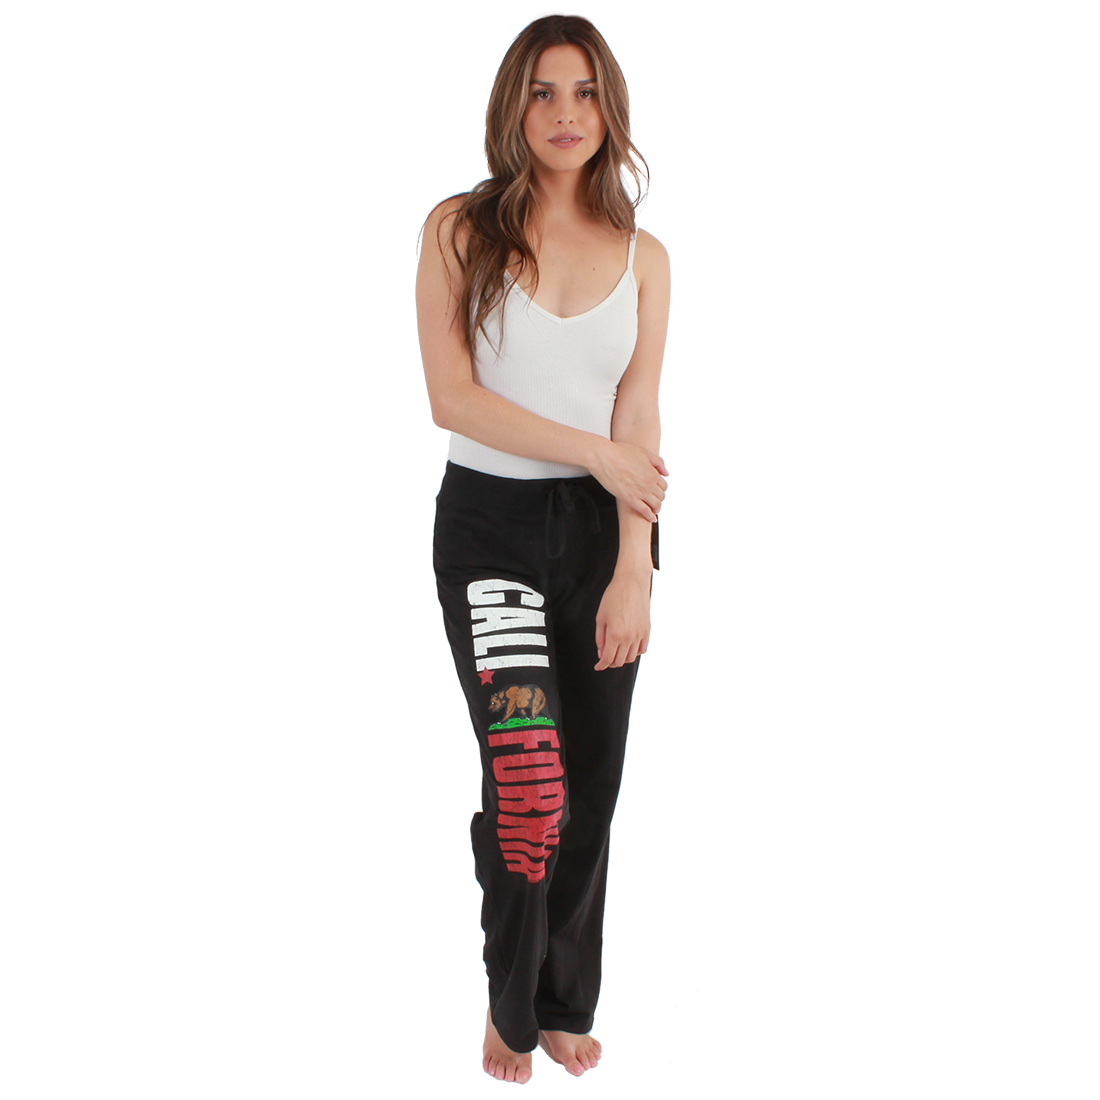 California Republic Women's Sweatpants